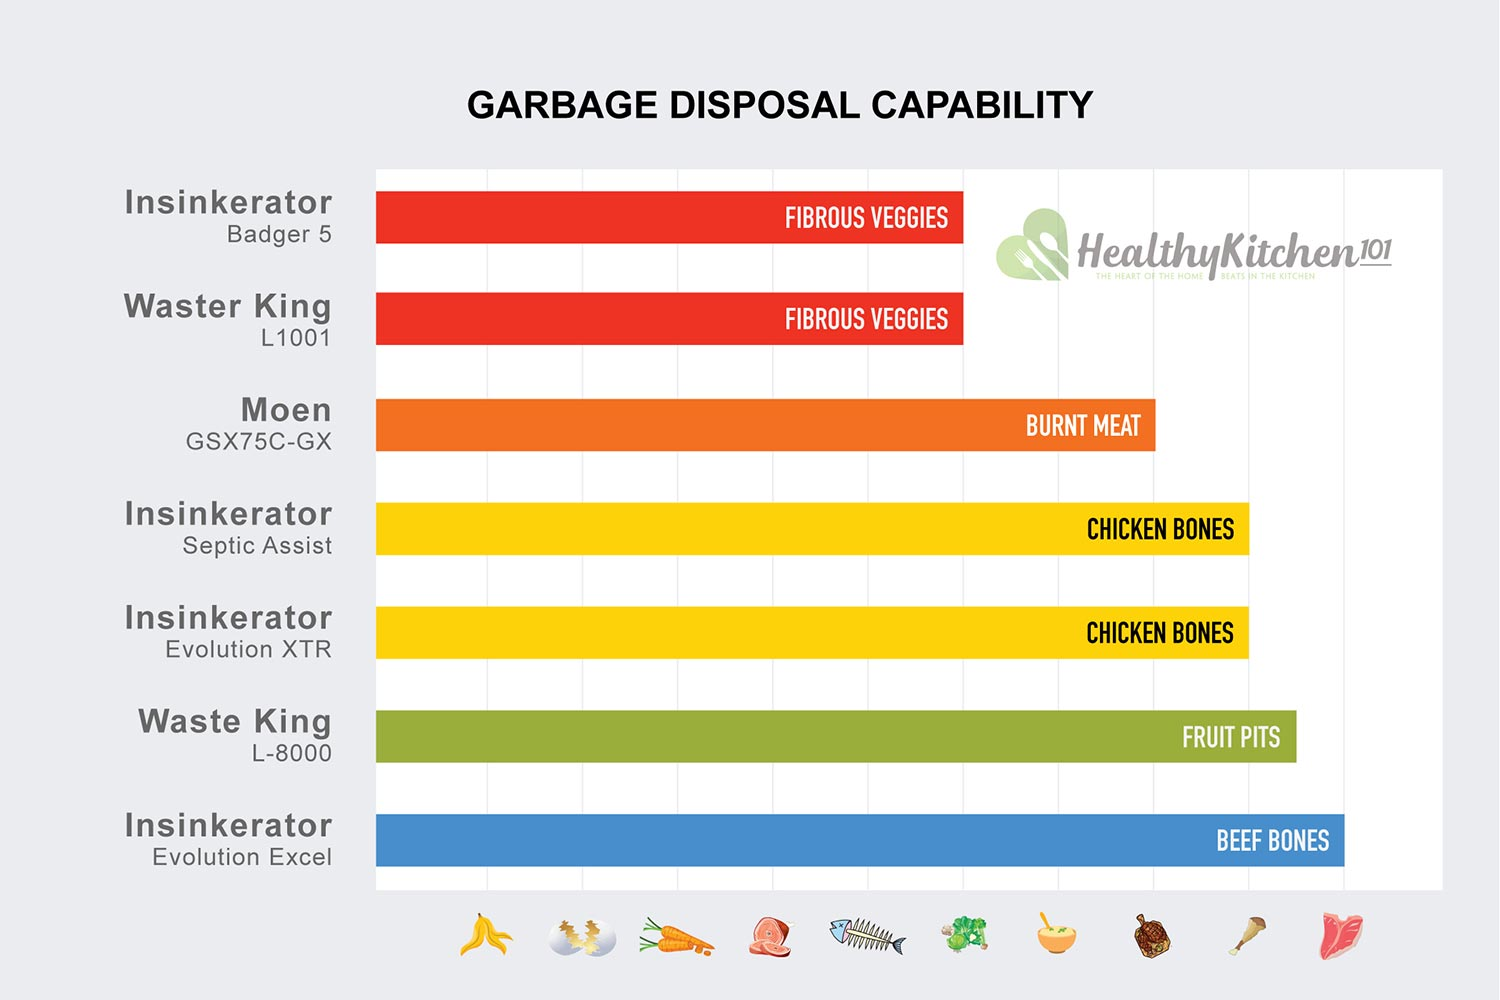 Garbage Disposal Capability